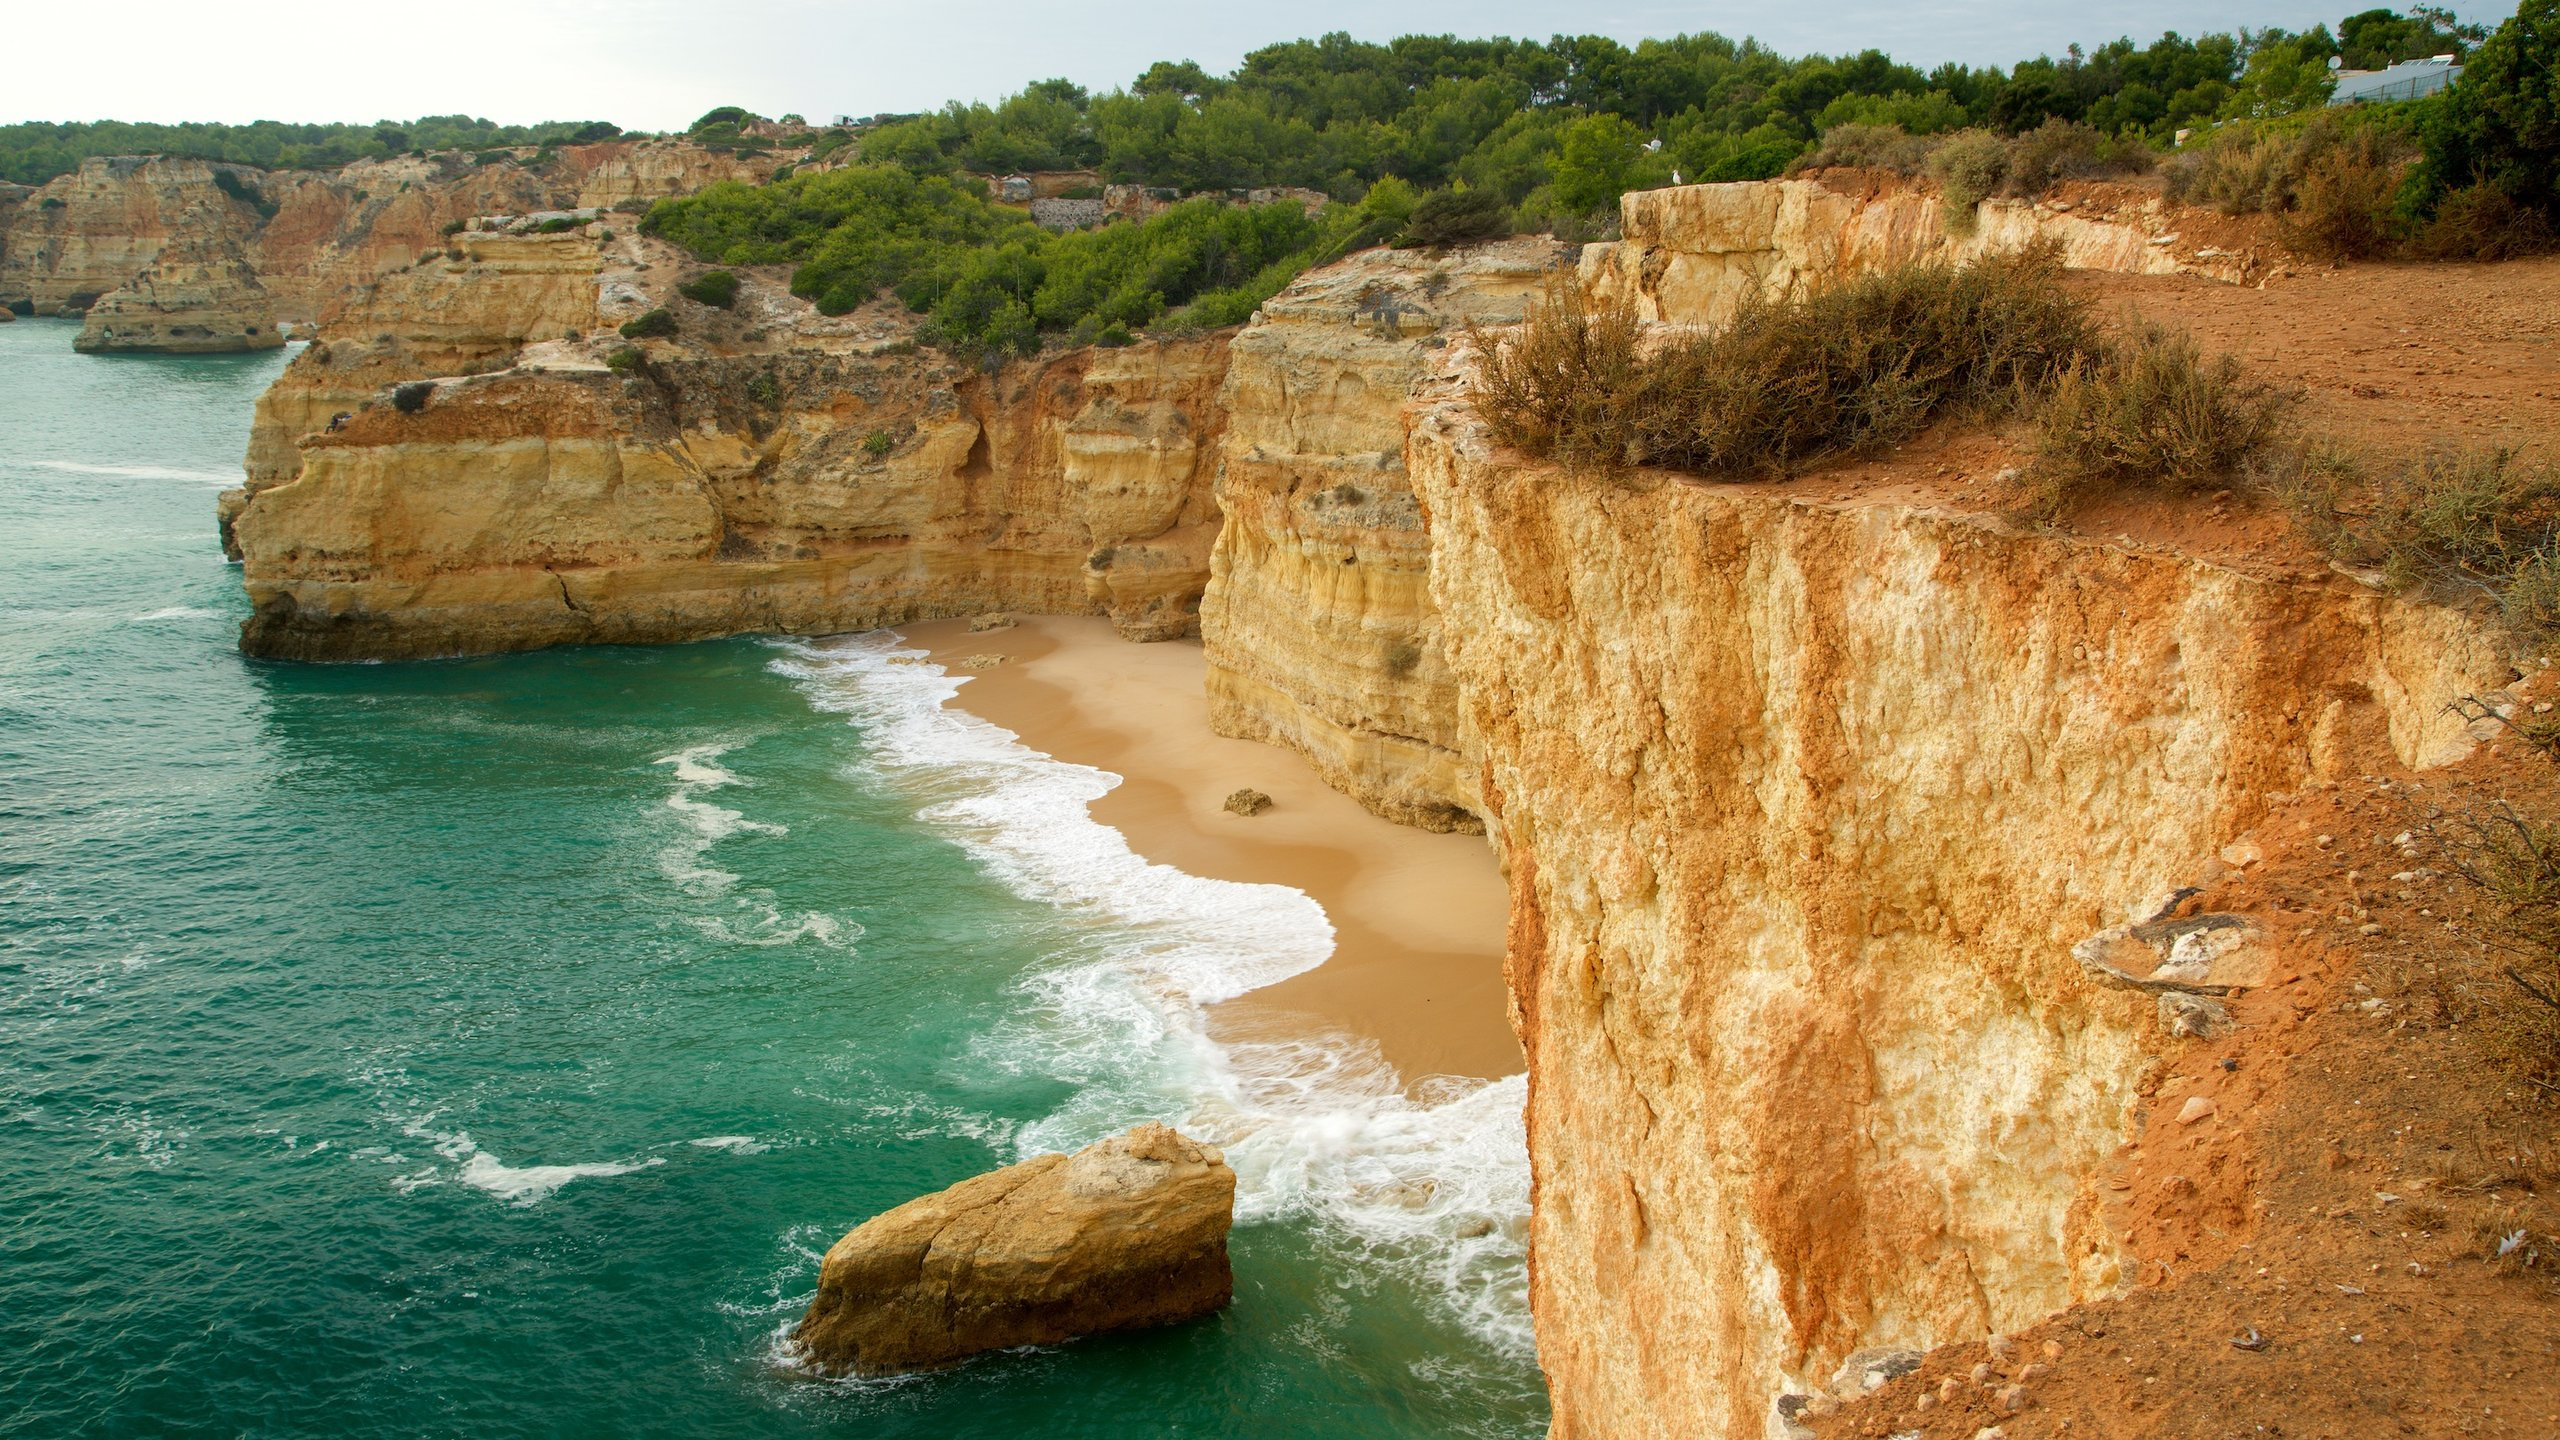 Hotel Tivoli Carvoeiro Algarve Booking Cheap Hotels In Carvoeiro Find 69 Hotel Deals Travelocity